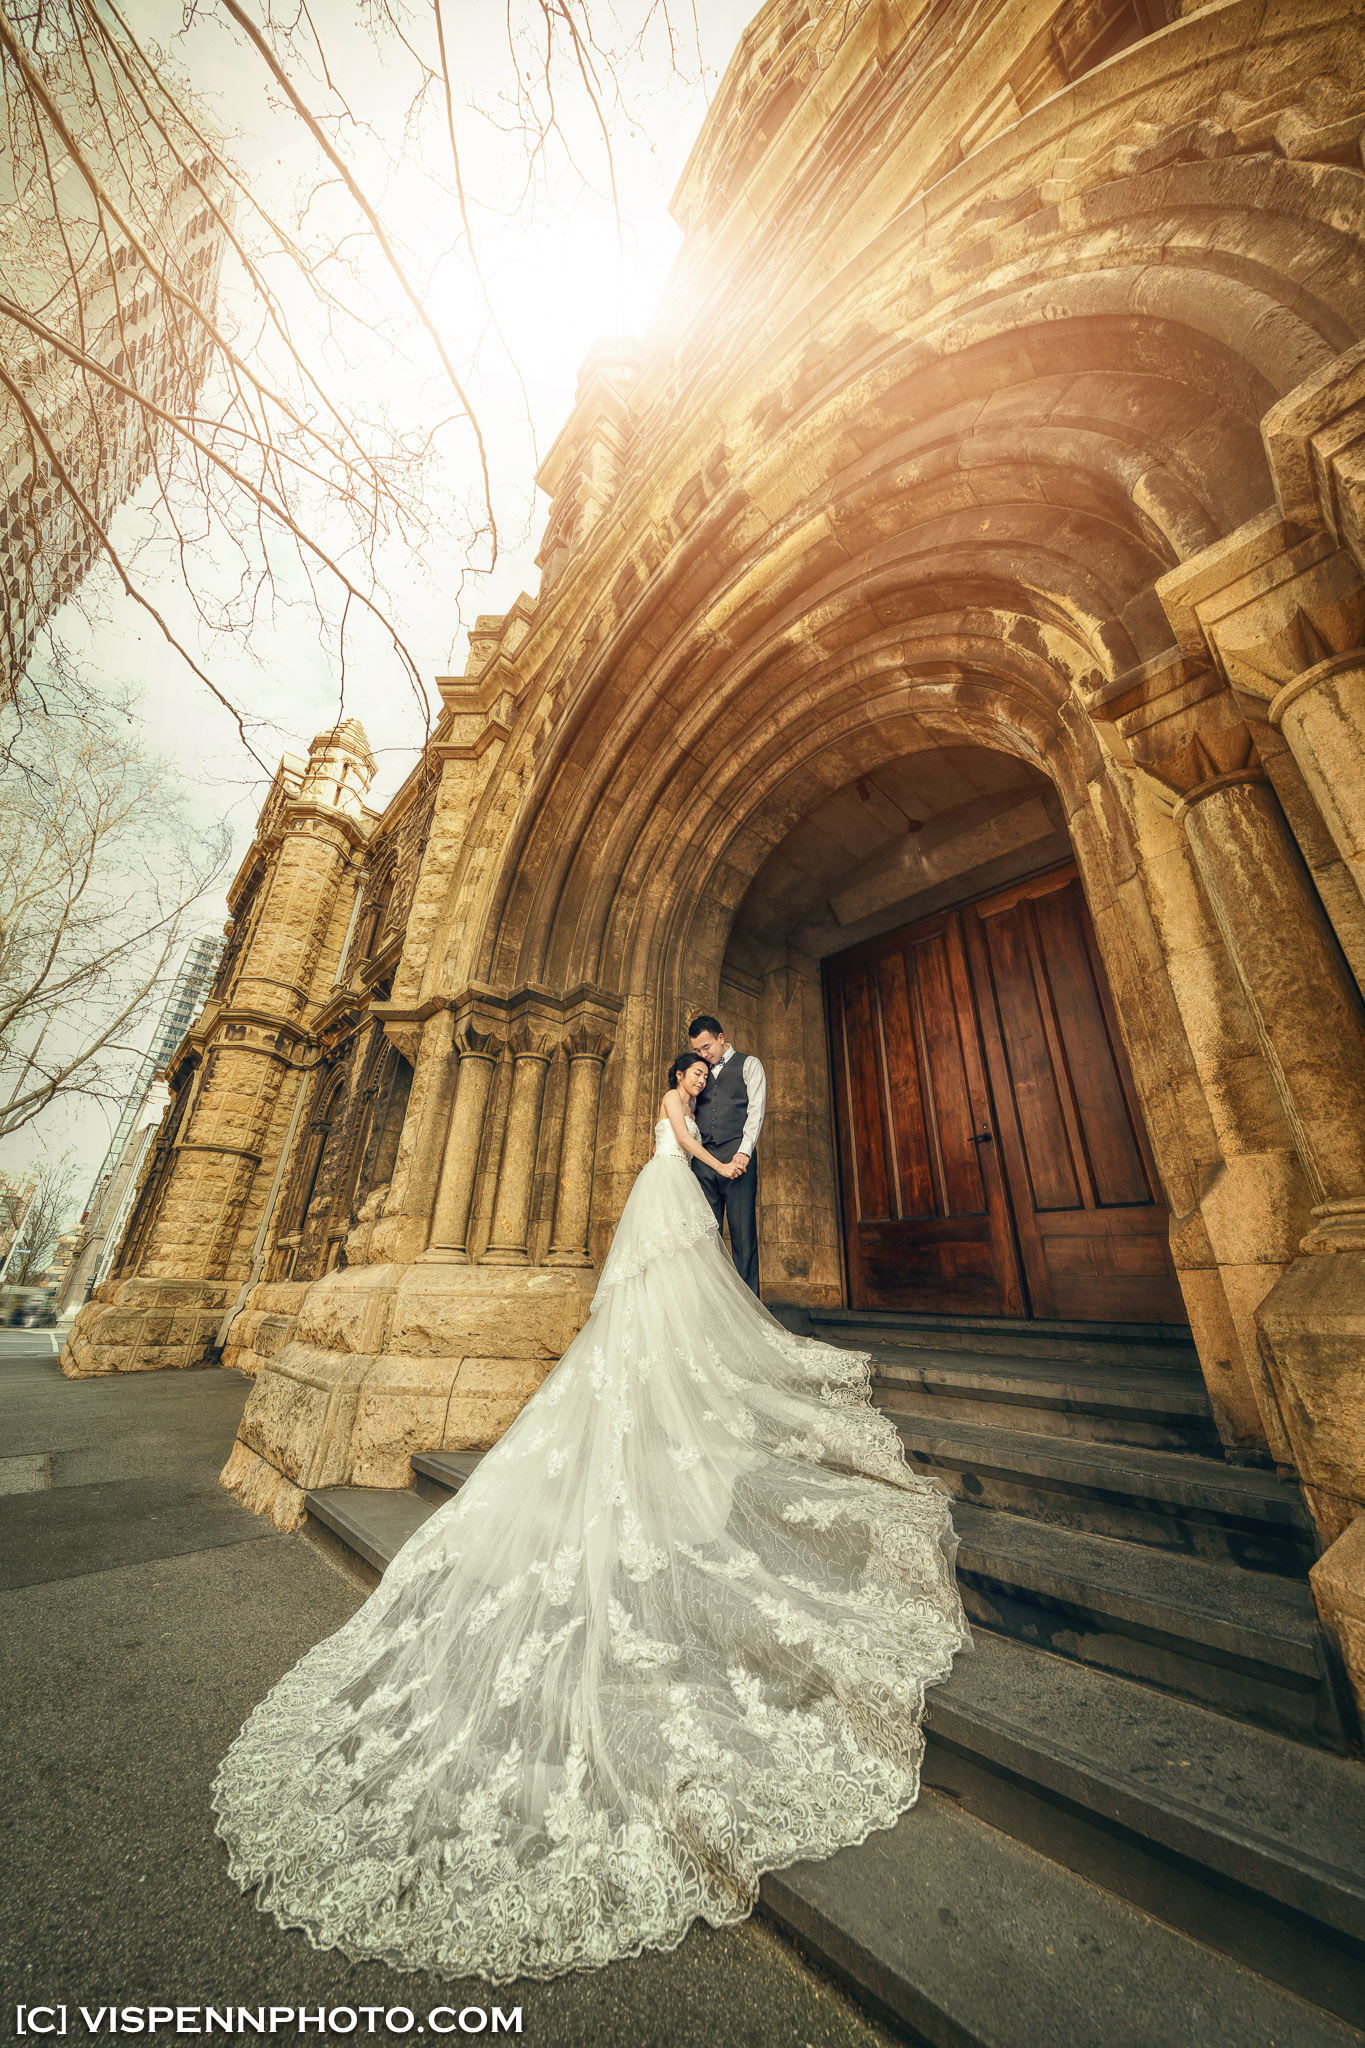 PRE WEDDING Photography Melbourne ZHPENN XXD 3603 1